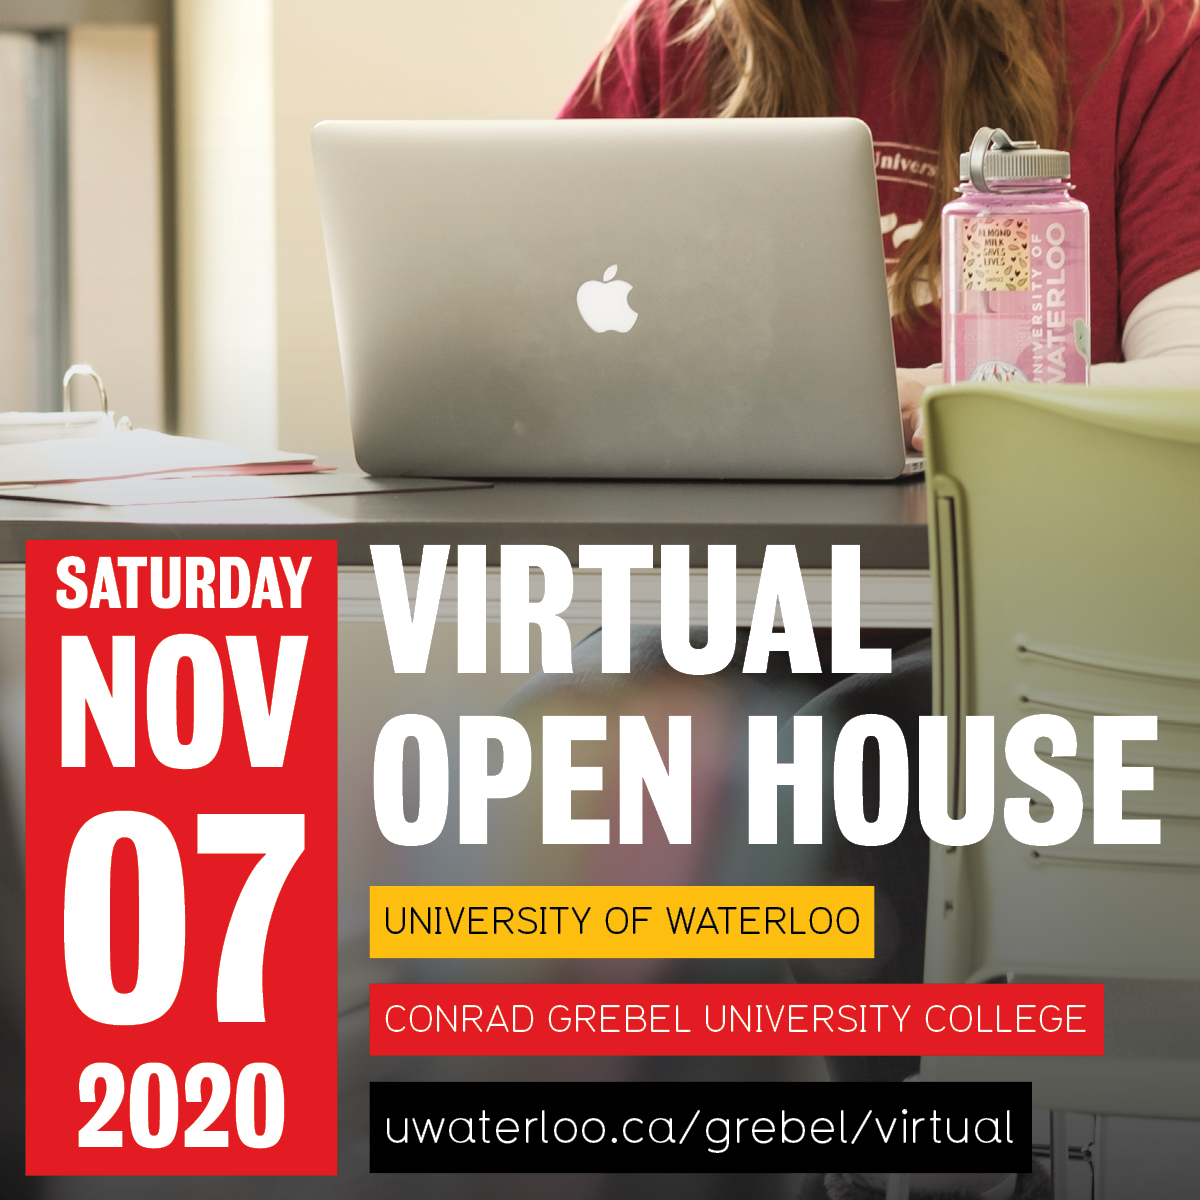 Virtual open house pic